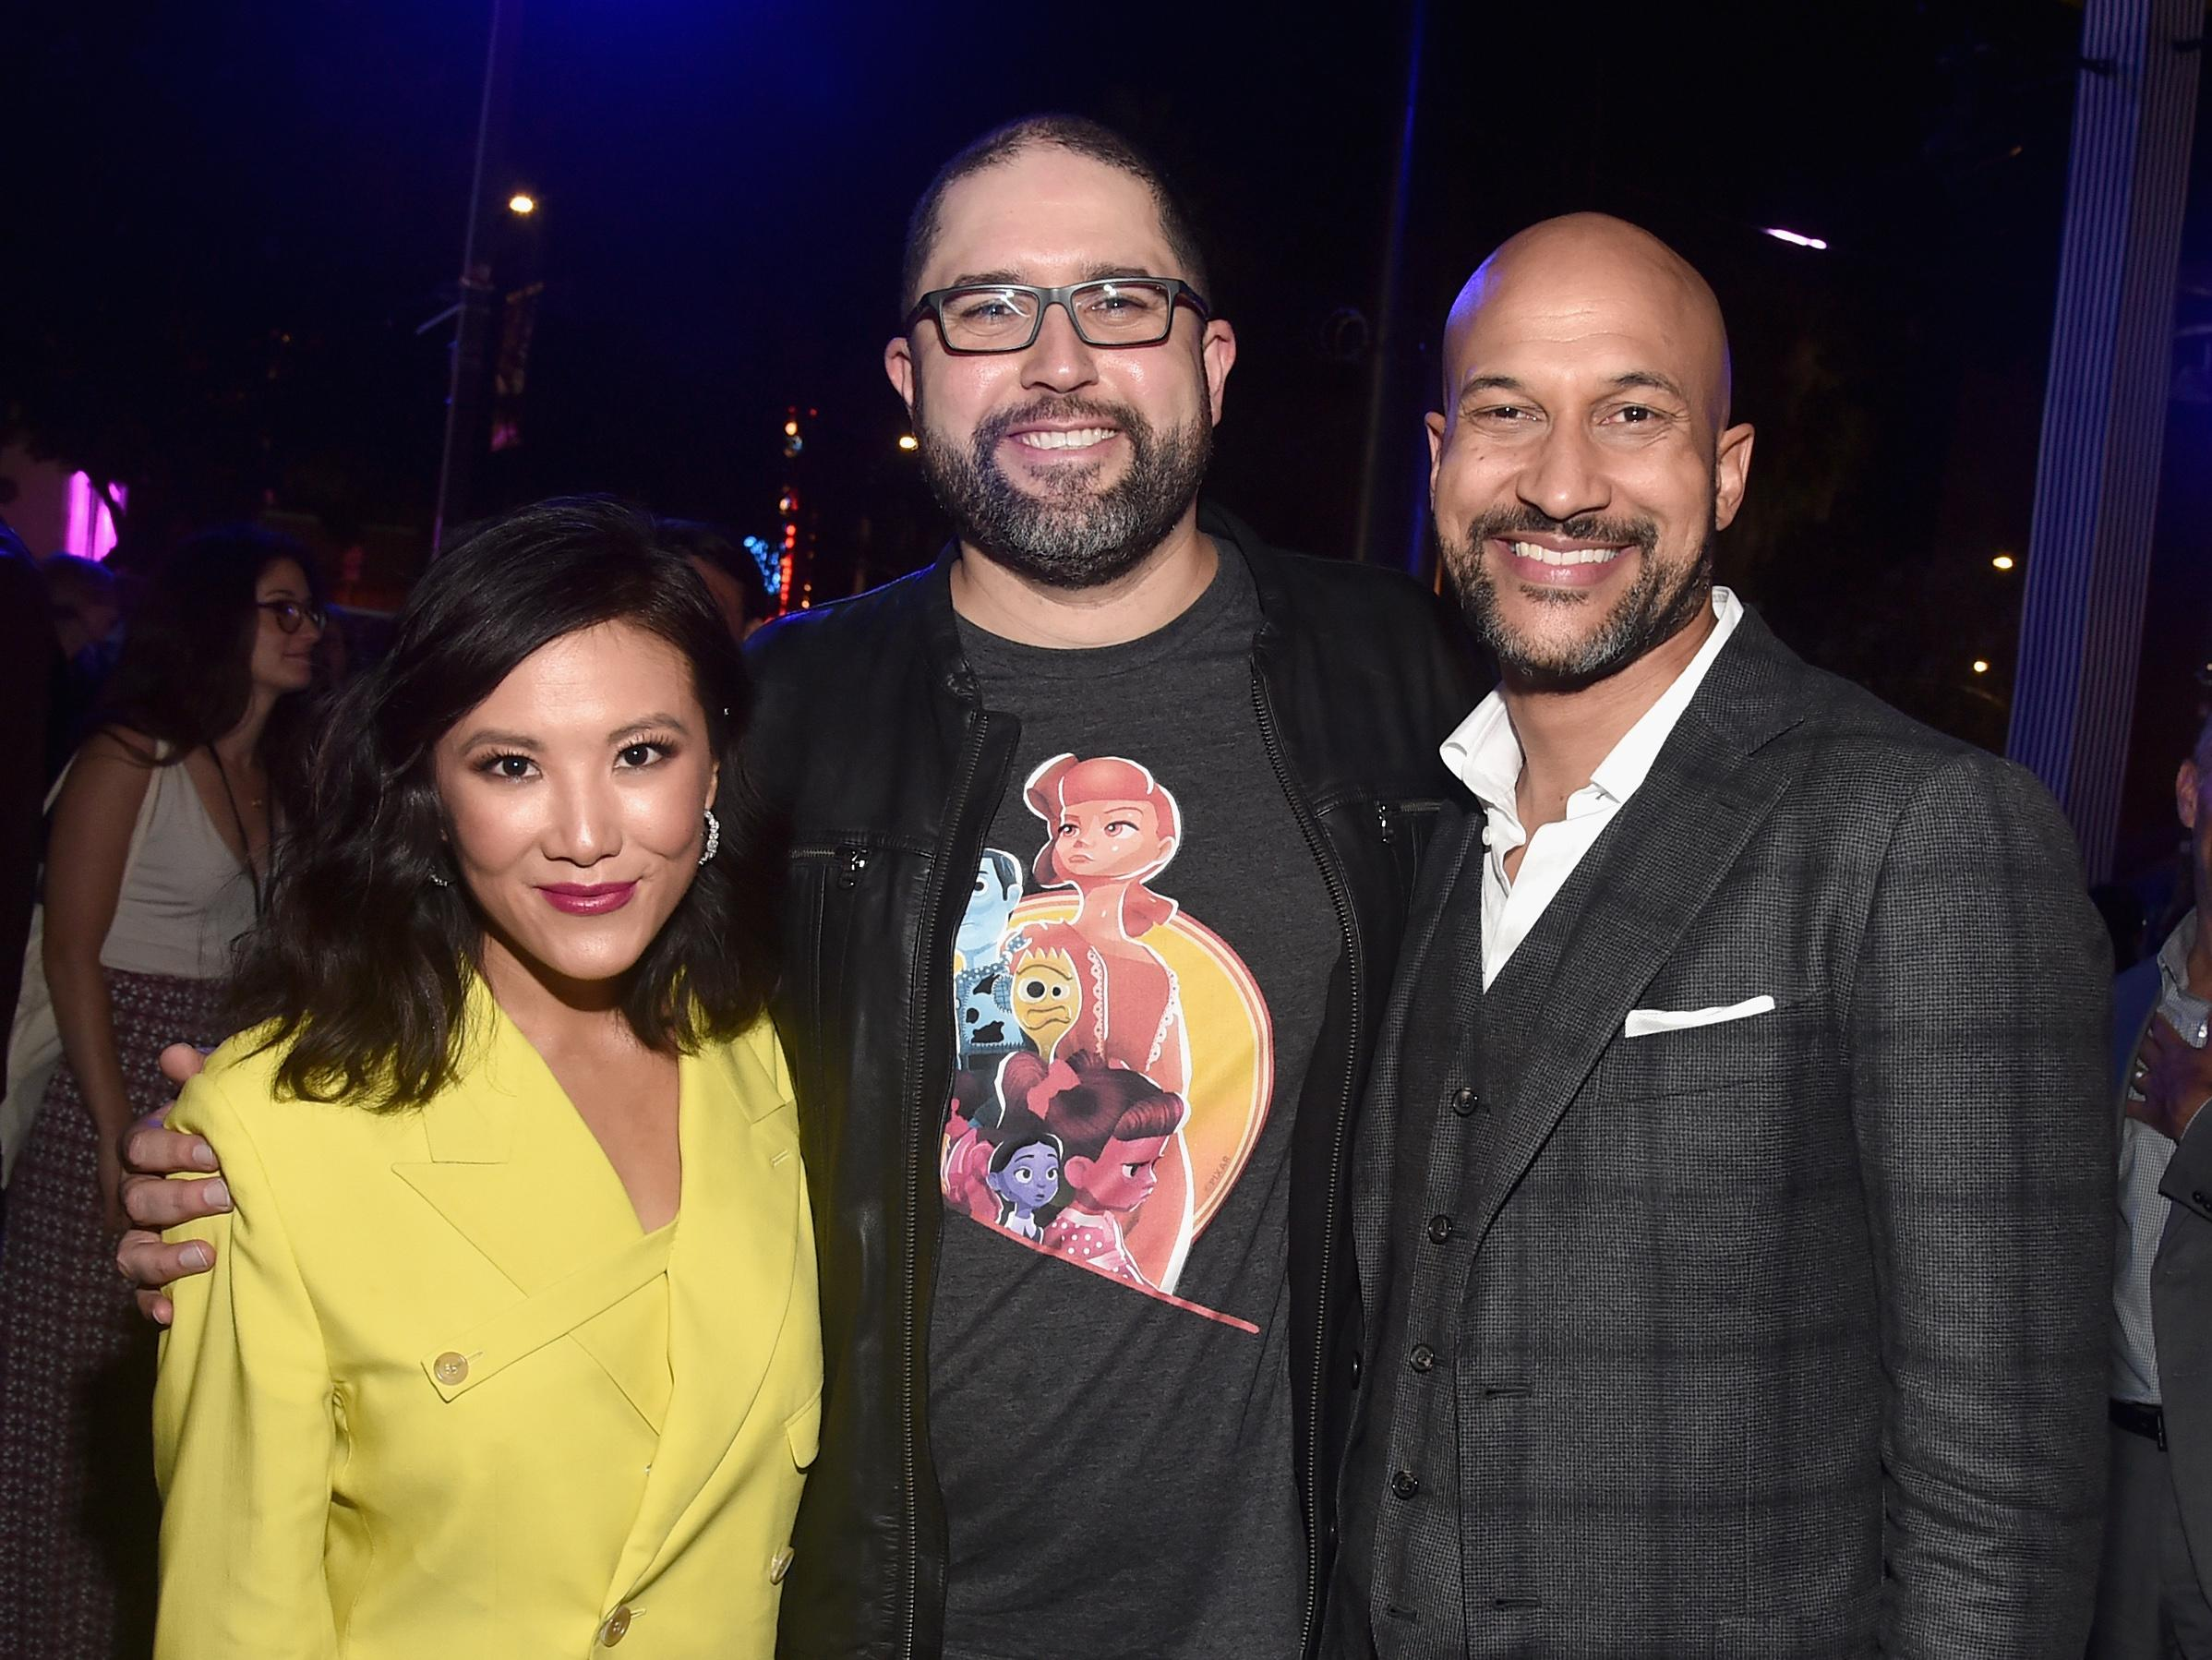 HOLLYWOOD, CA - JUNE 11: (L-R) Ally Maki, director Josh Cooley, and Keegan-Michael Key attend the world premiere of Disney and Pixar's TOY STORY 4 at the El Capitan Theatre in Hollywood, CA on Tuesday, June 11, 2019. (Photo by Alberto E. Rodriguez/Getty Images for Disney)